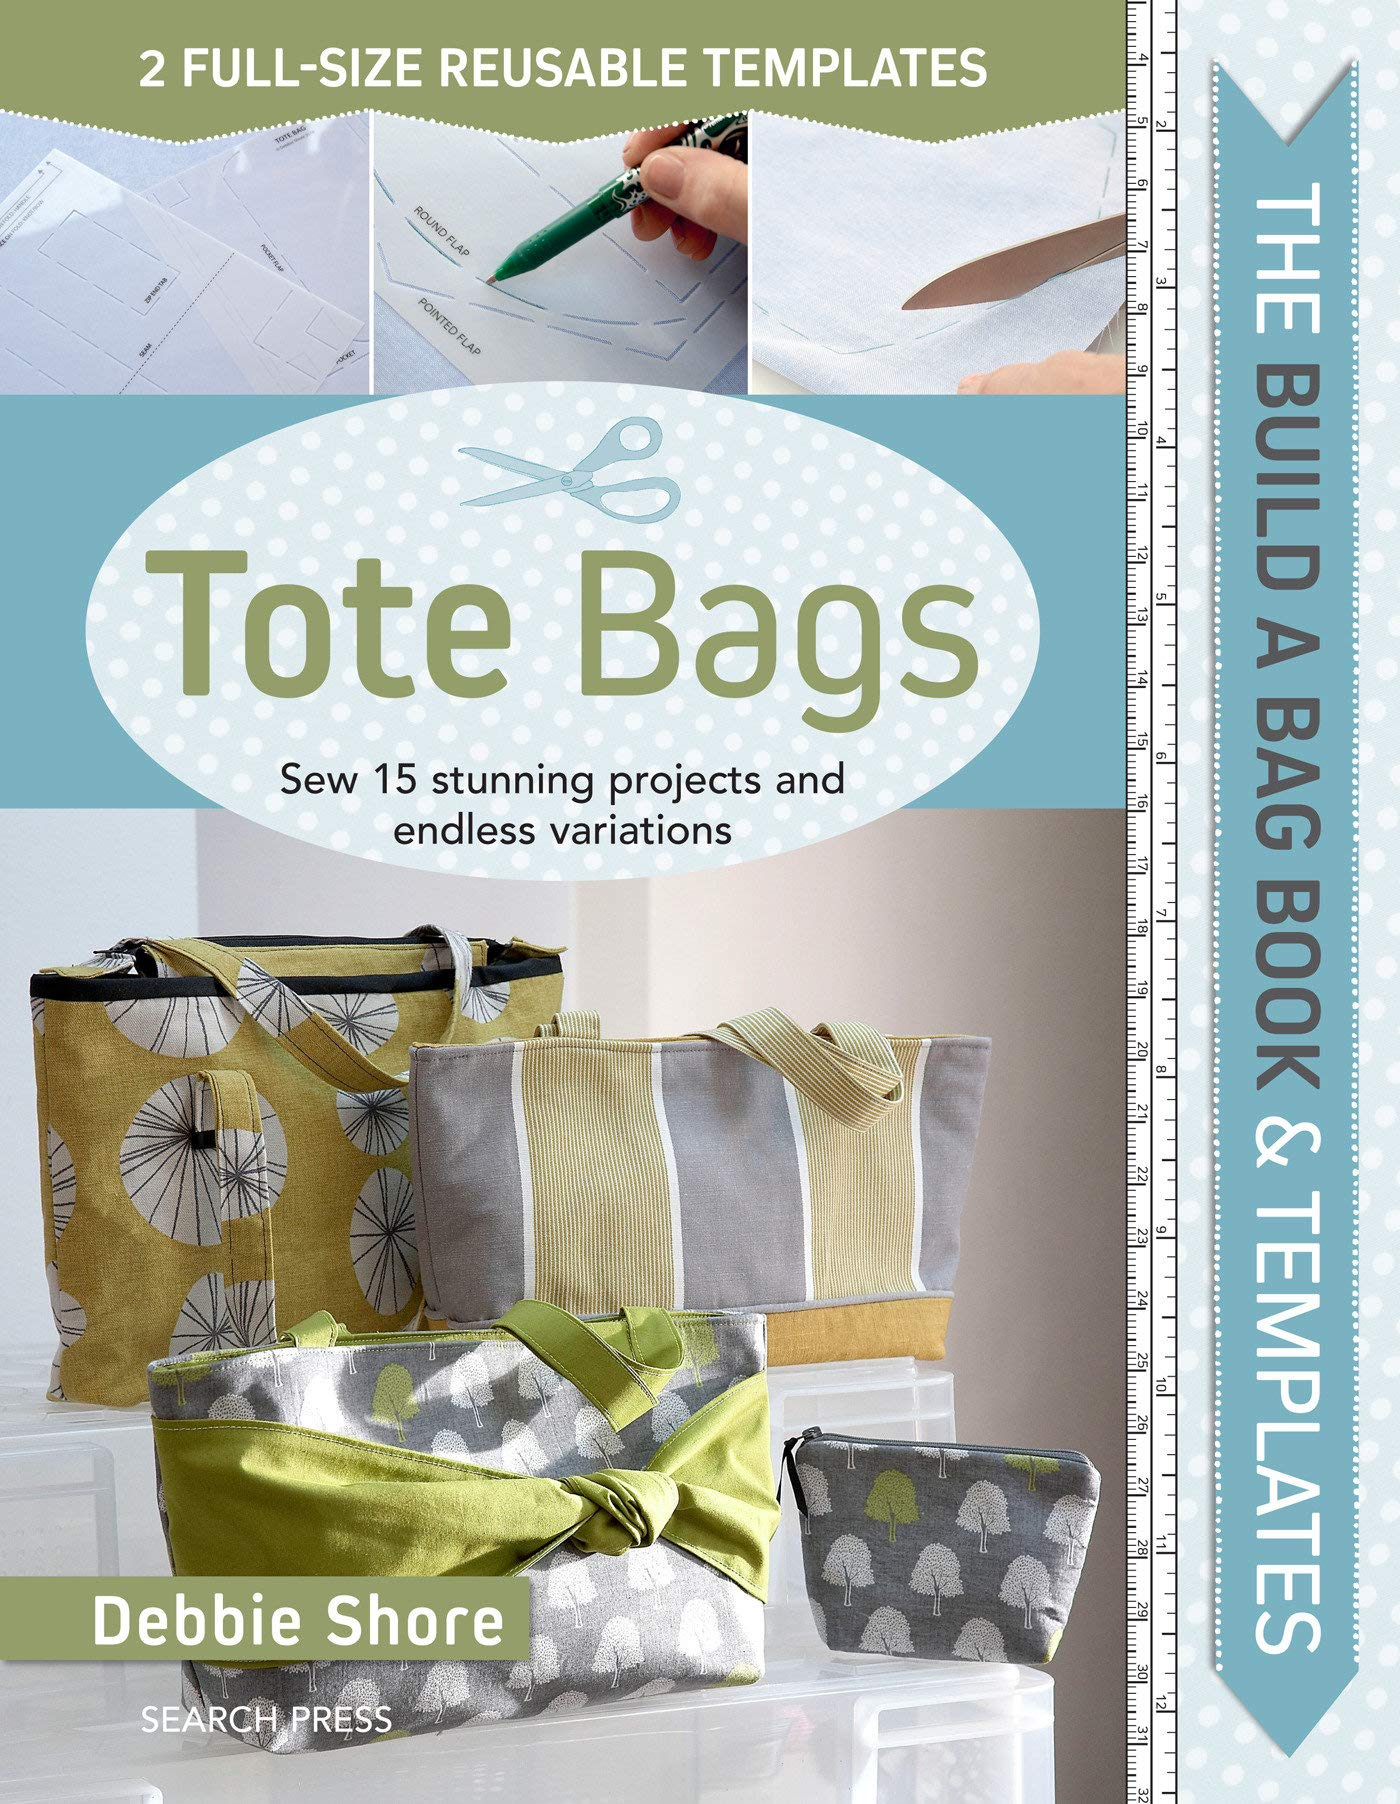 The Build a Bag Book: Tote Bags: Sew 15 stunning projects